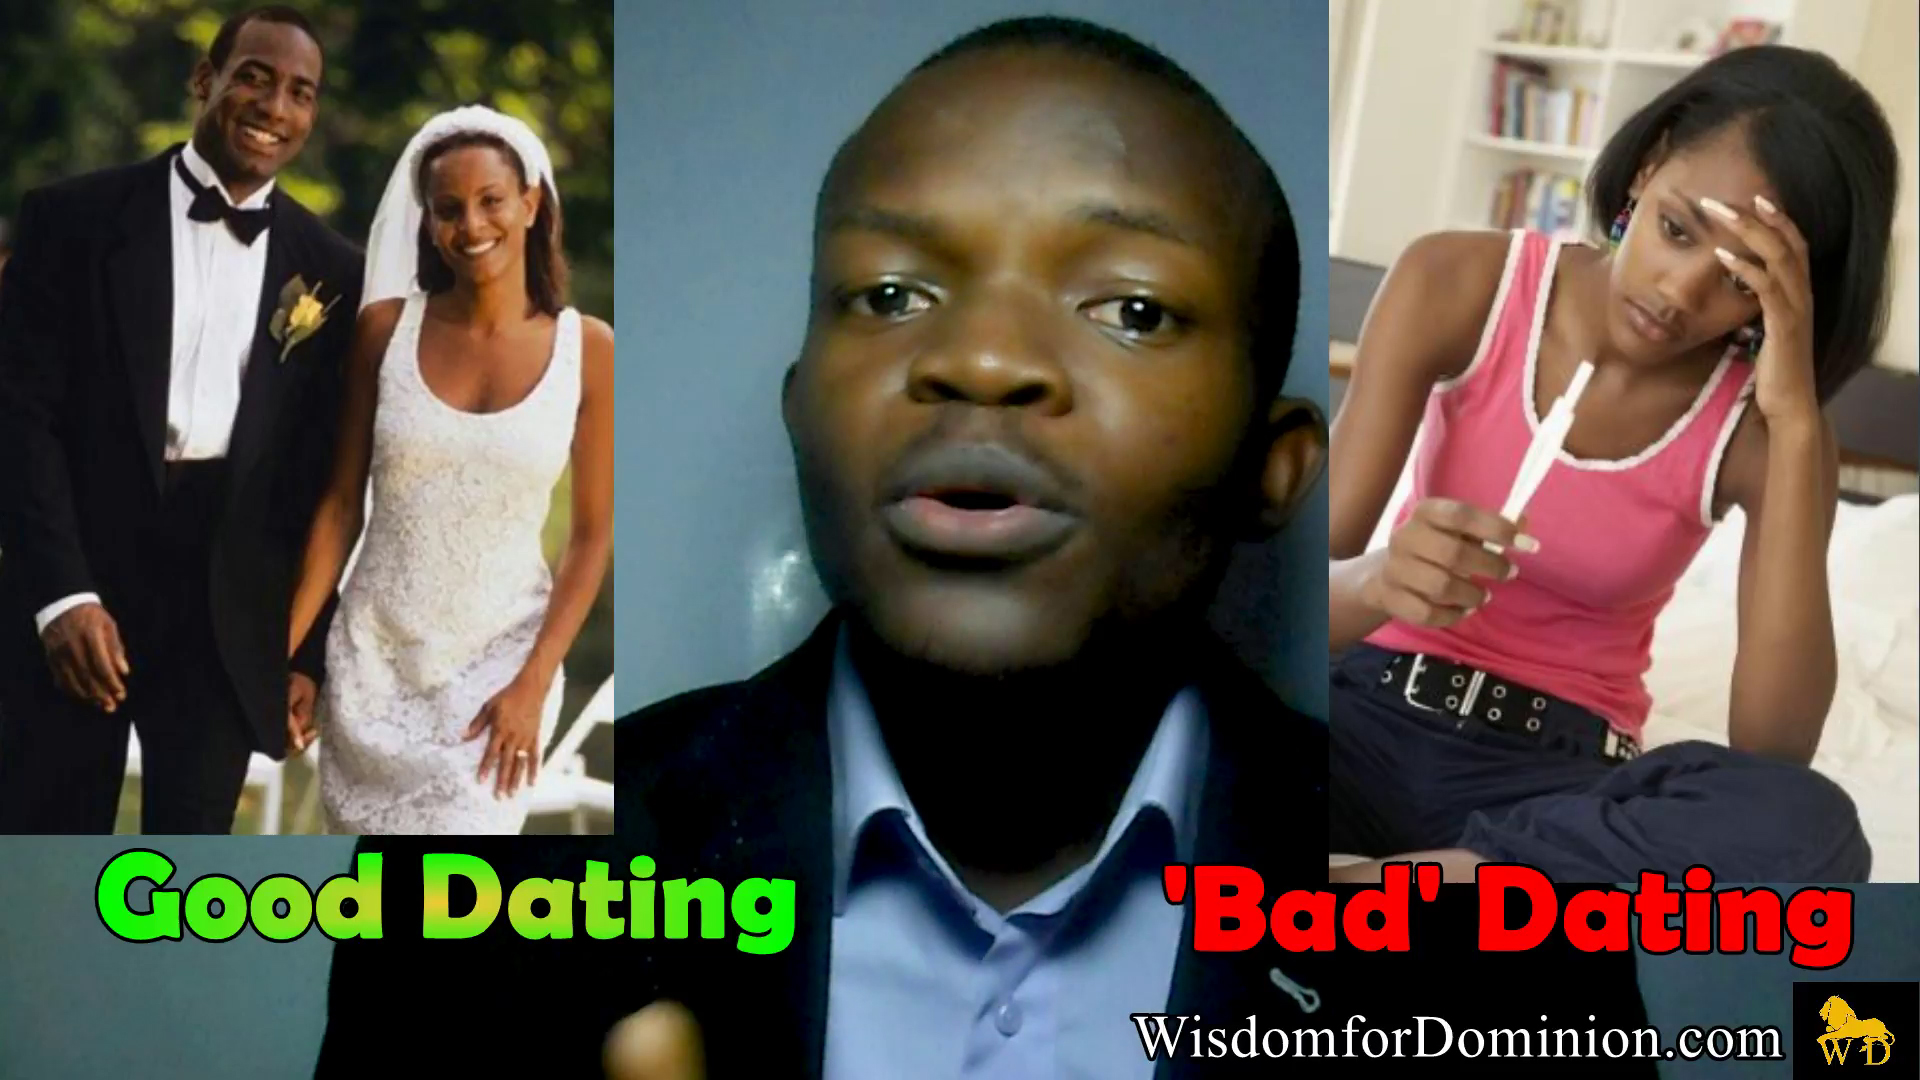 How do you know you are ready for dating?